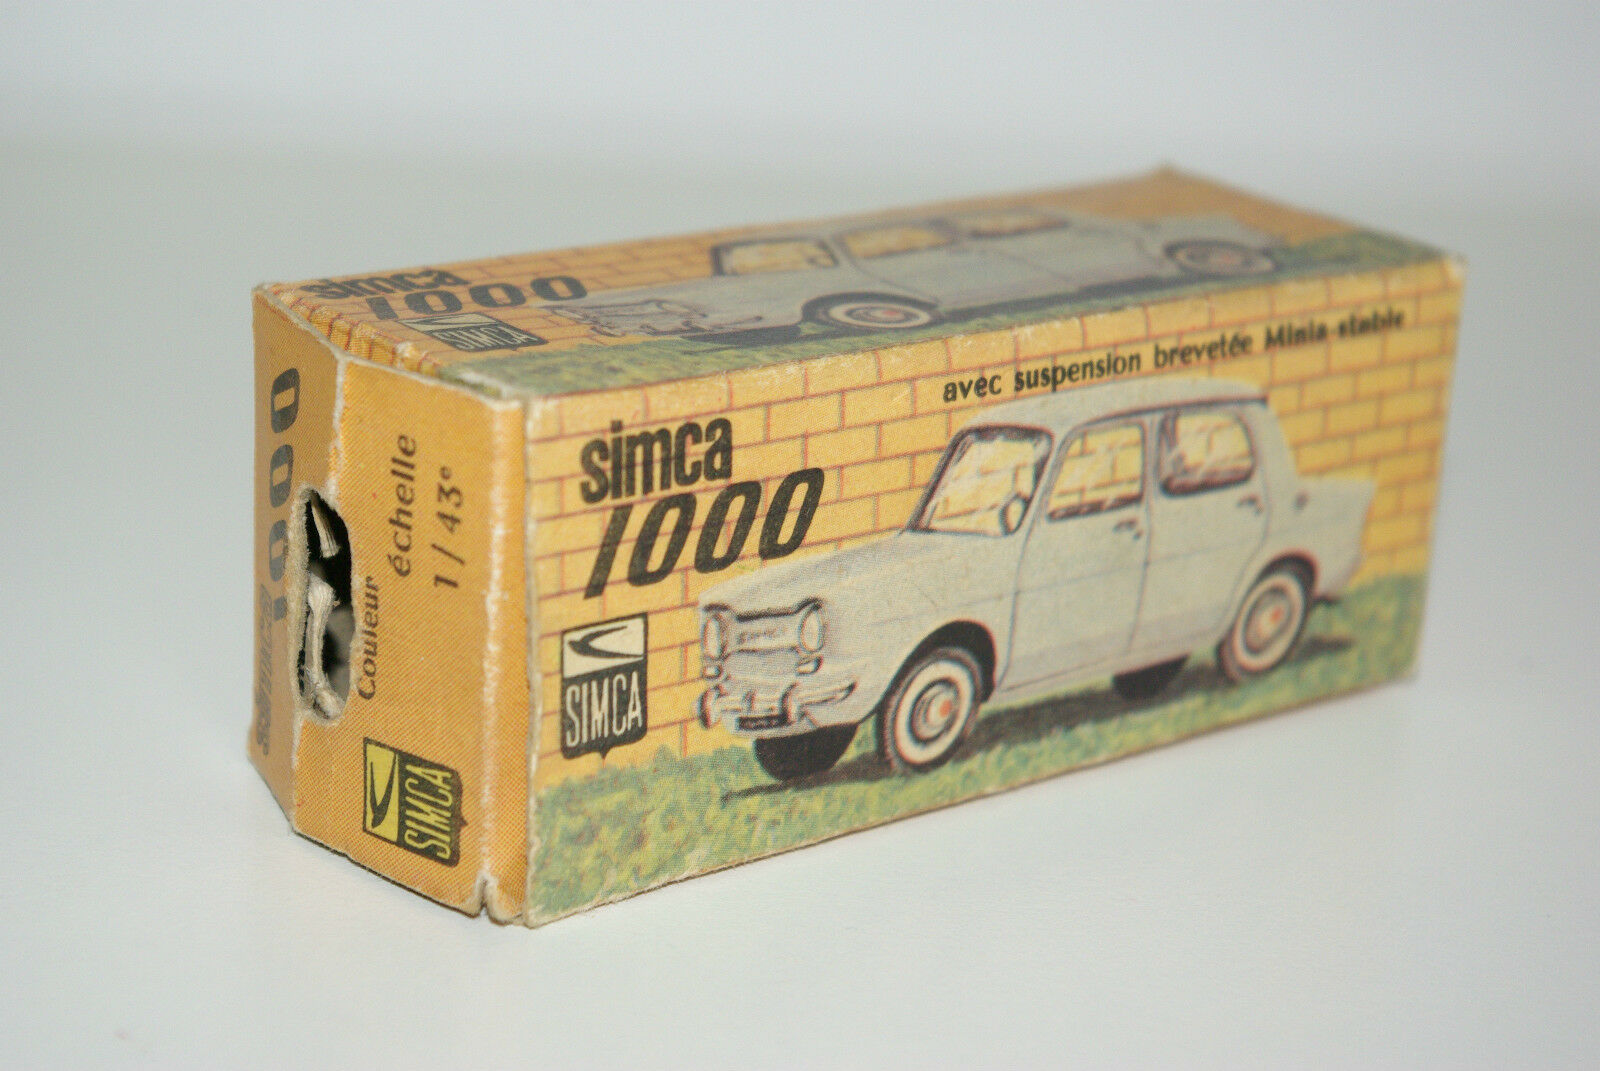 MINIALUXE SIMCA 1000 EMPTY BOX ORIGINALE EXCELLENT RARE RARO RARO!!!